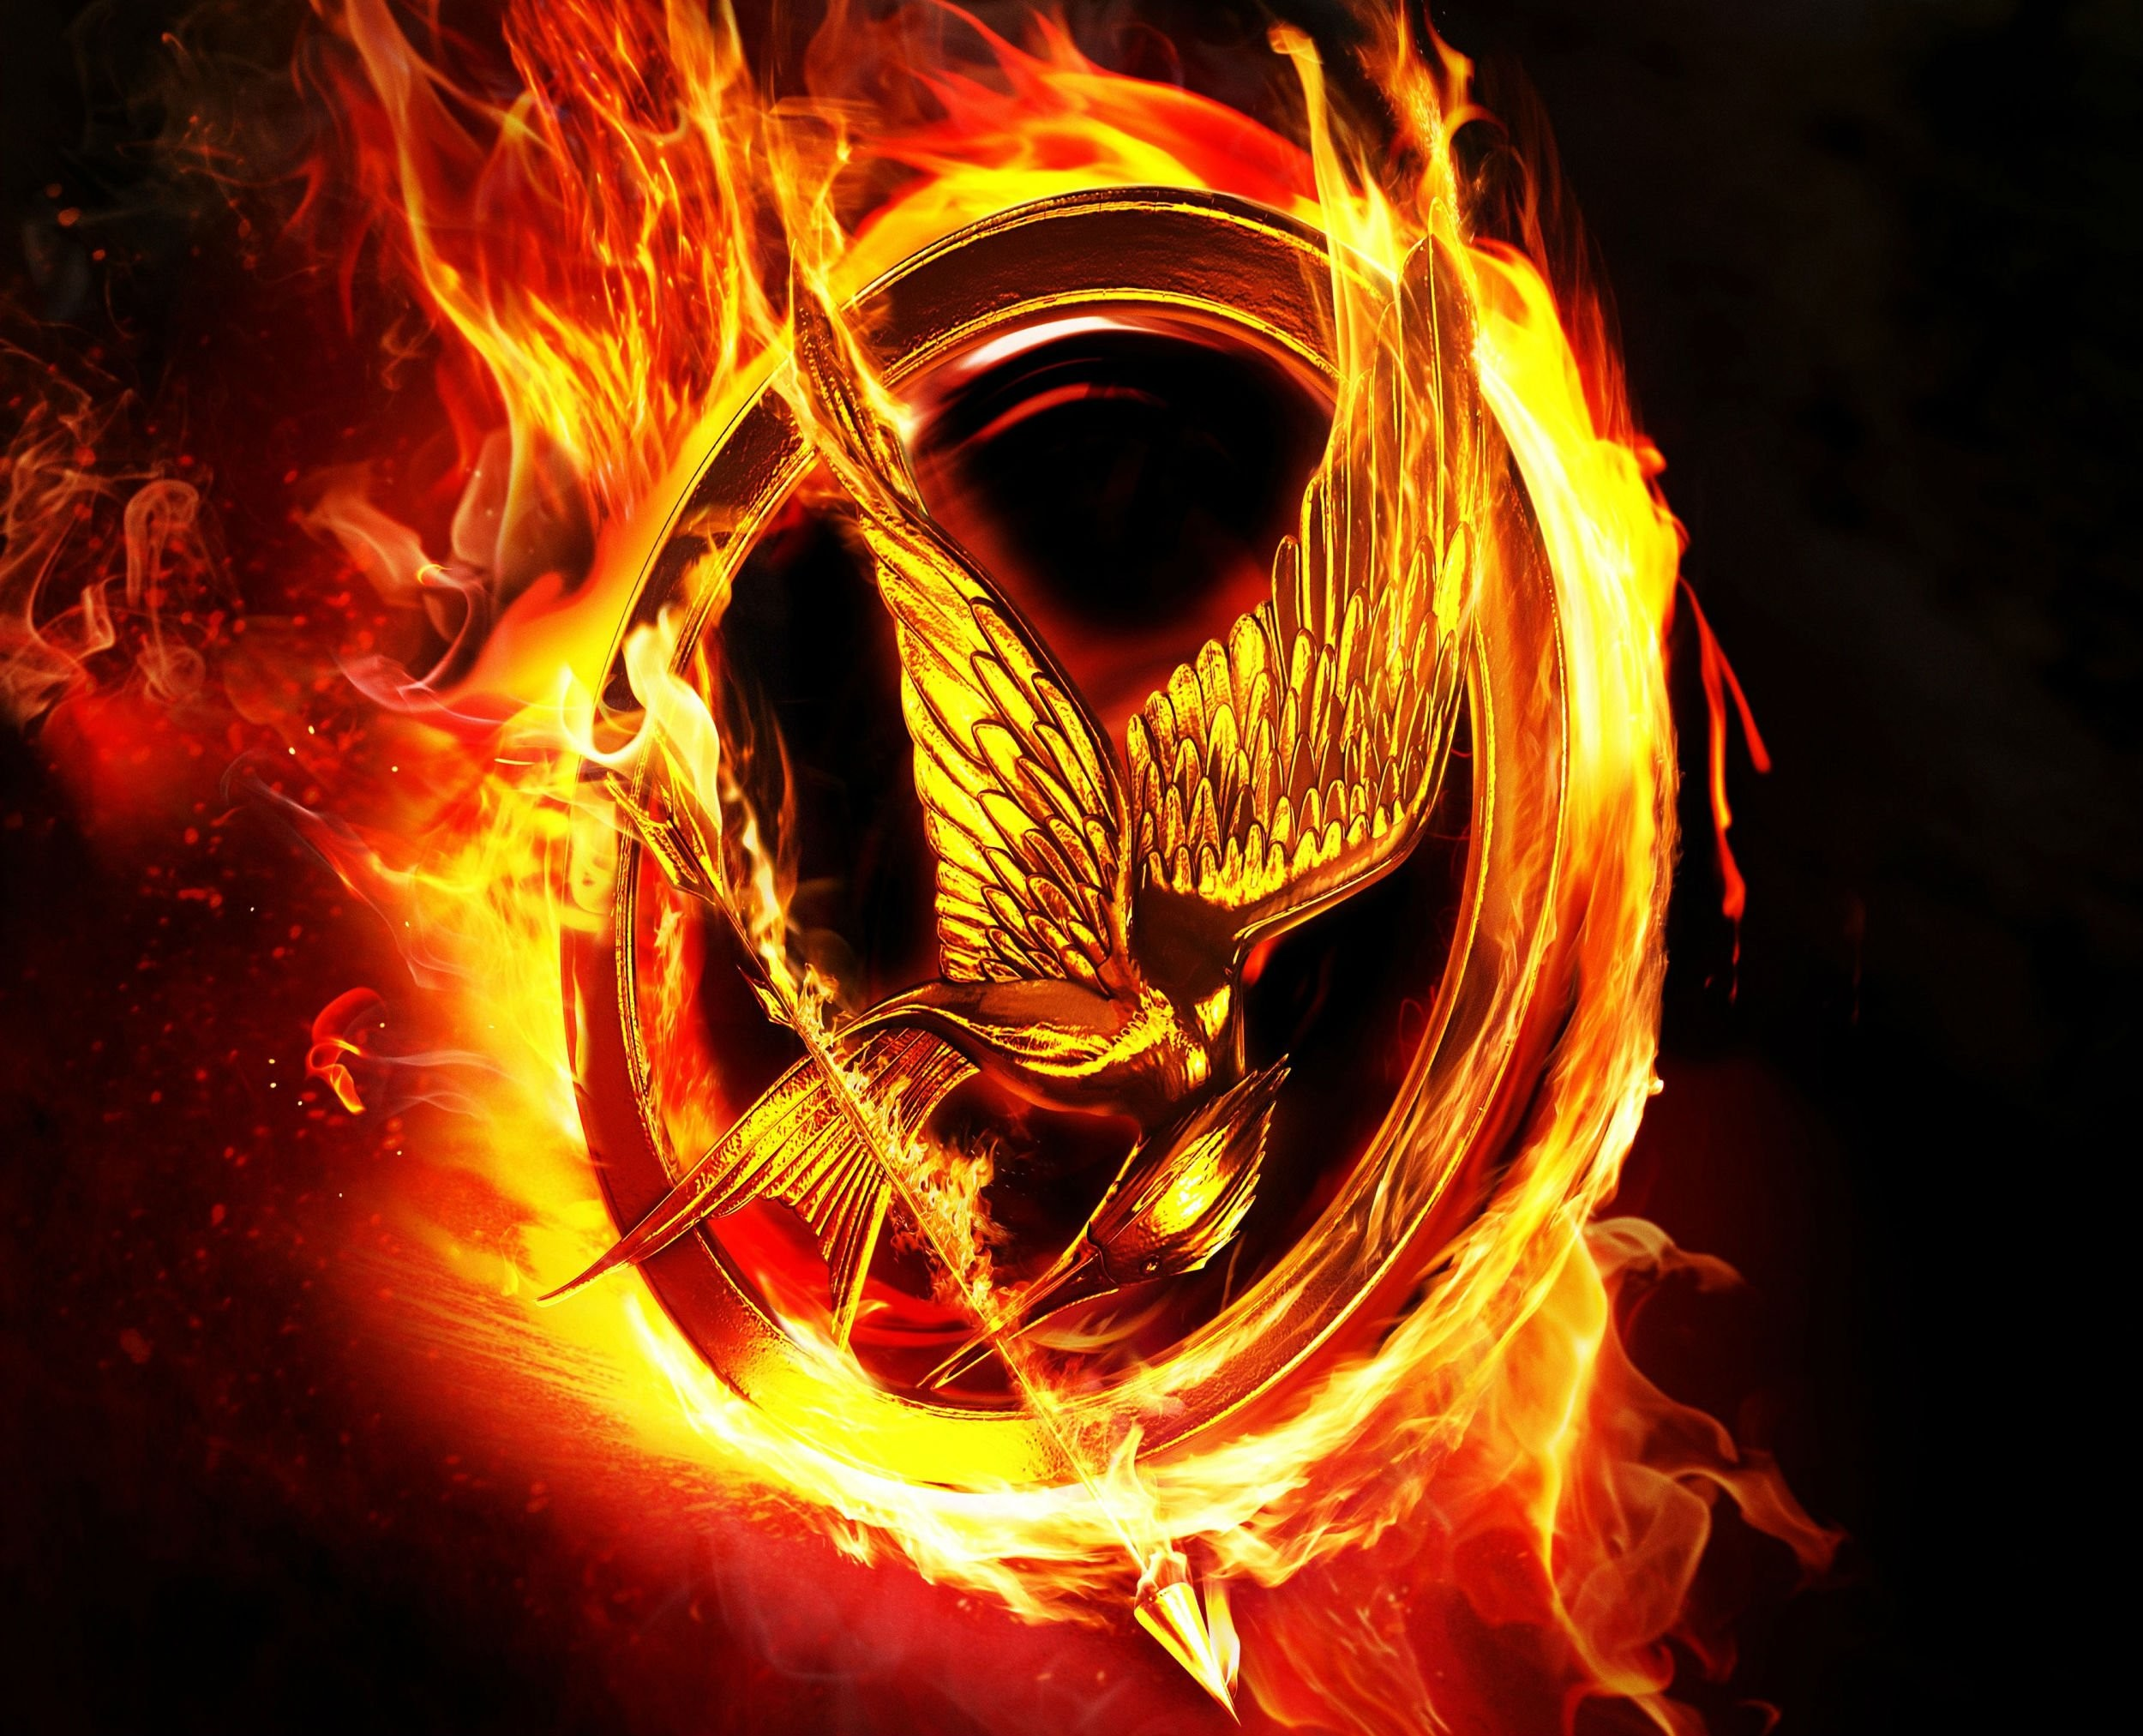 2500x2025 HUNGER GAMES MOCKINGJAY adventure sci-fi fantasy wallpaper background